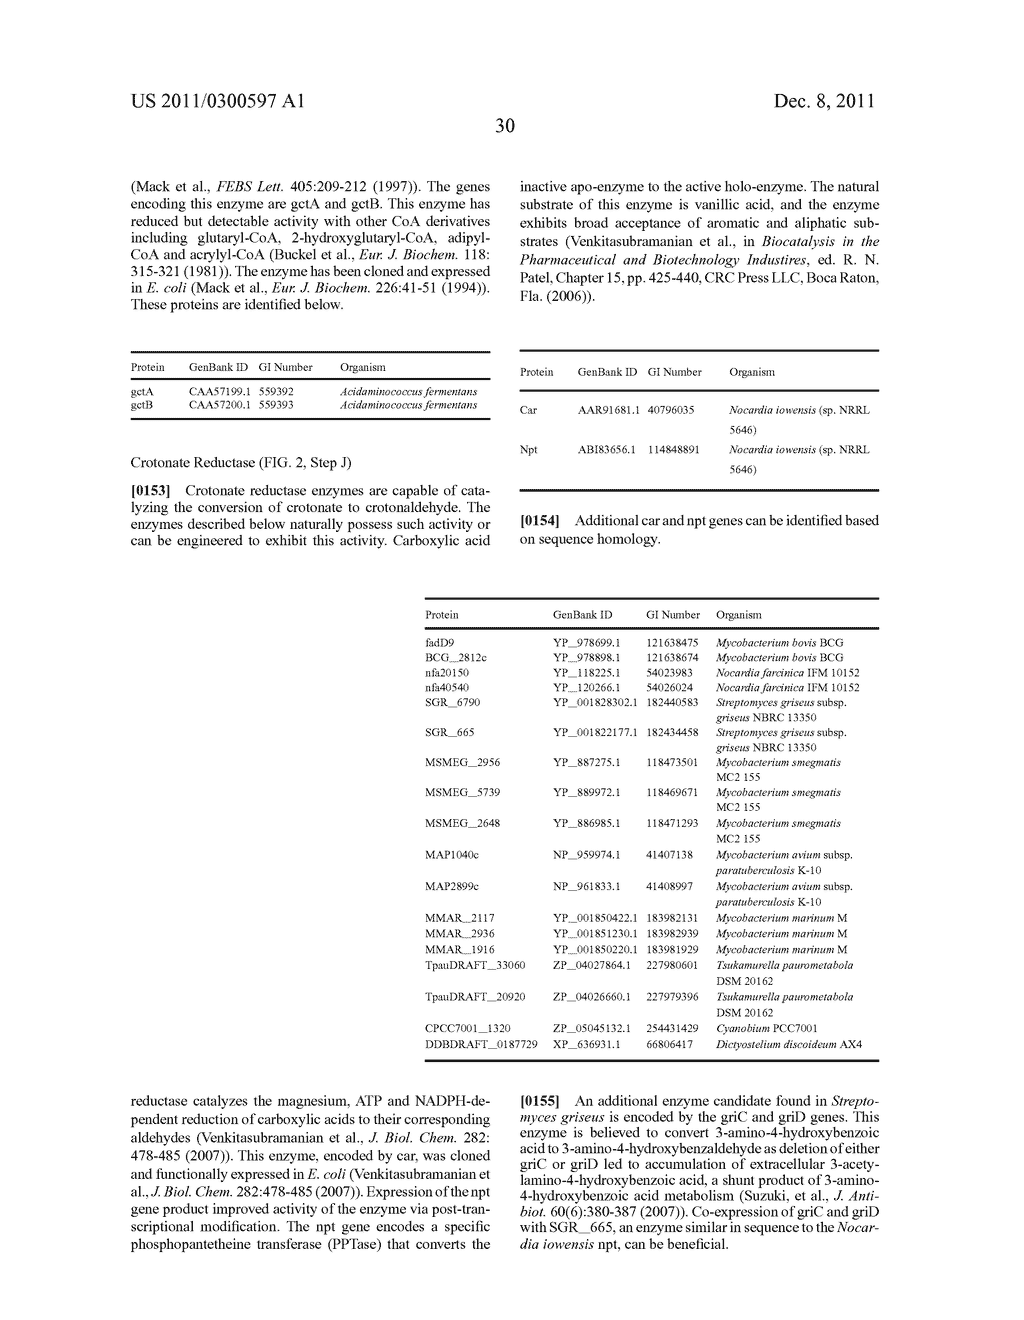 MICROORGANISMS AND METHODS FOR THE BIOSYNTHESIS OF BUTADIENE - diagram, schematic, and image 35